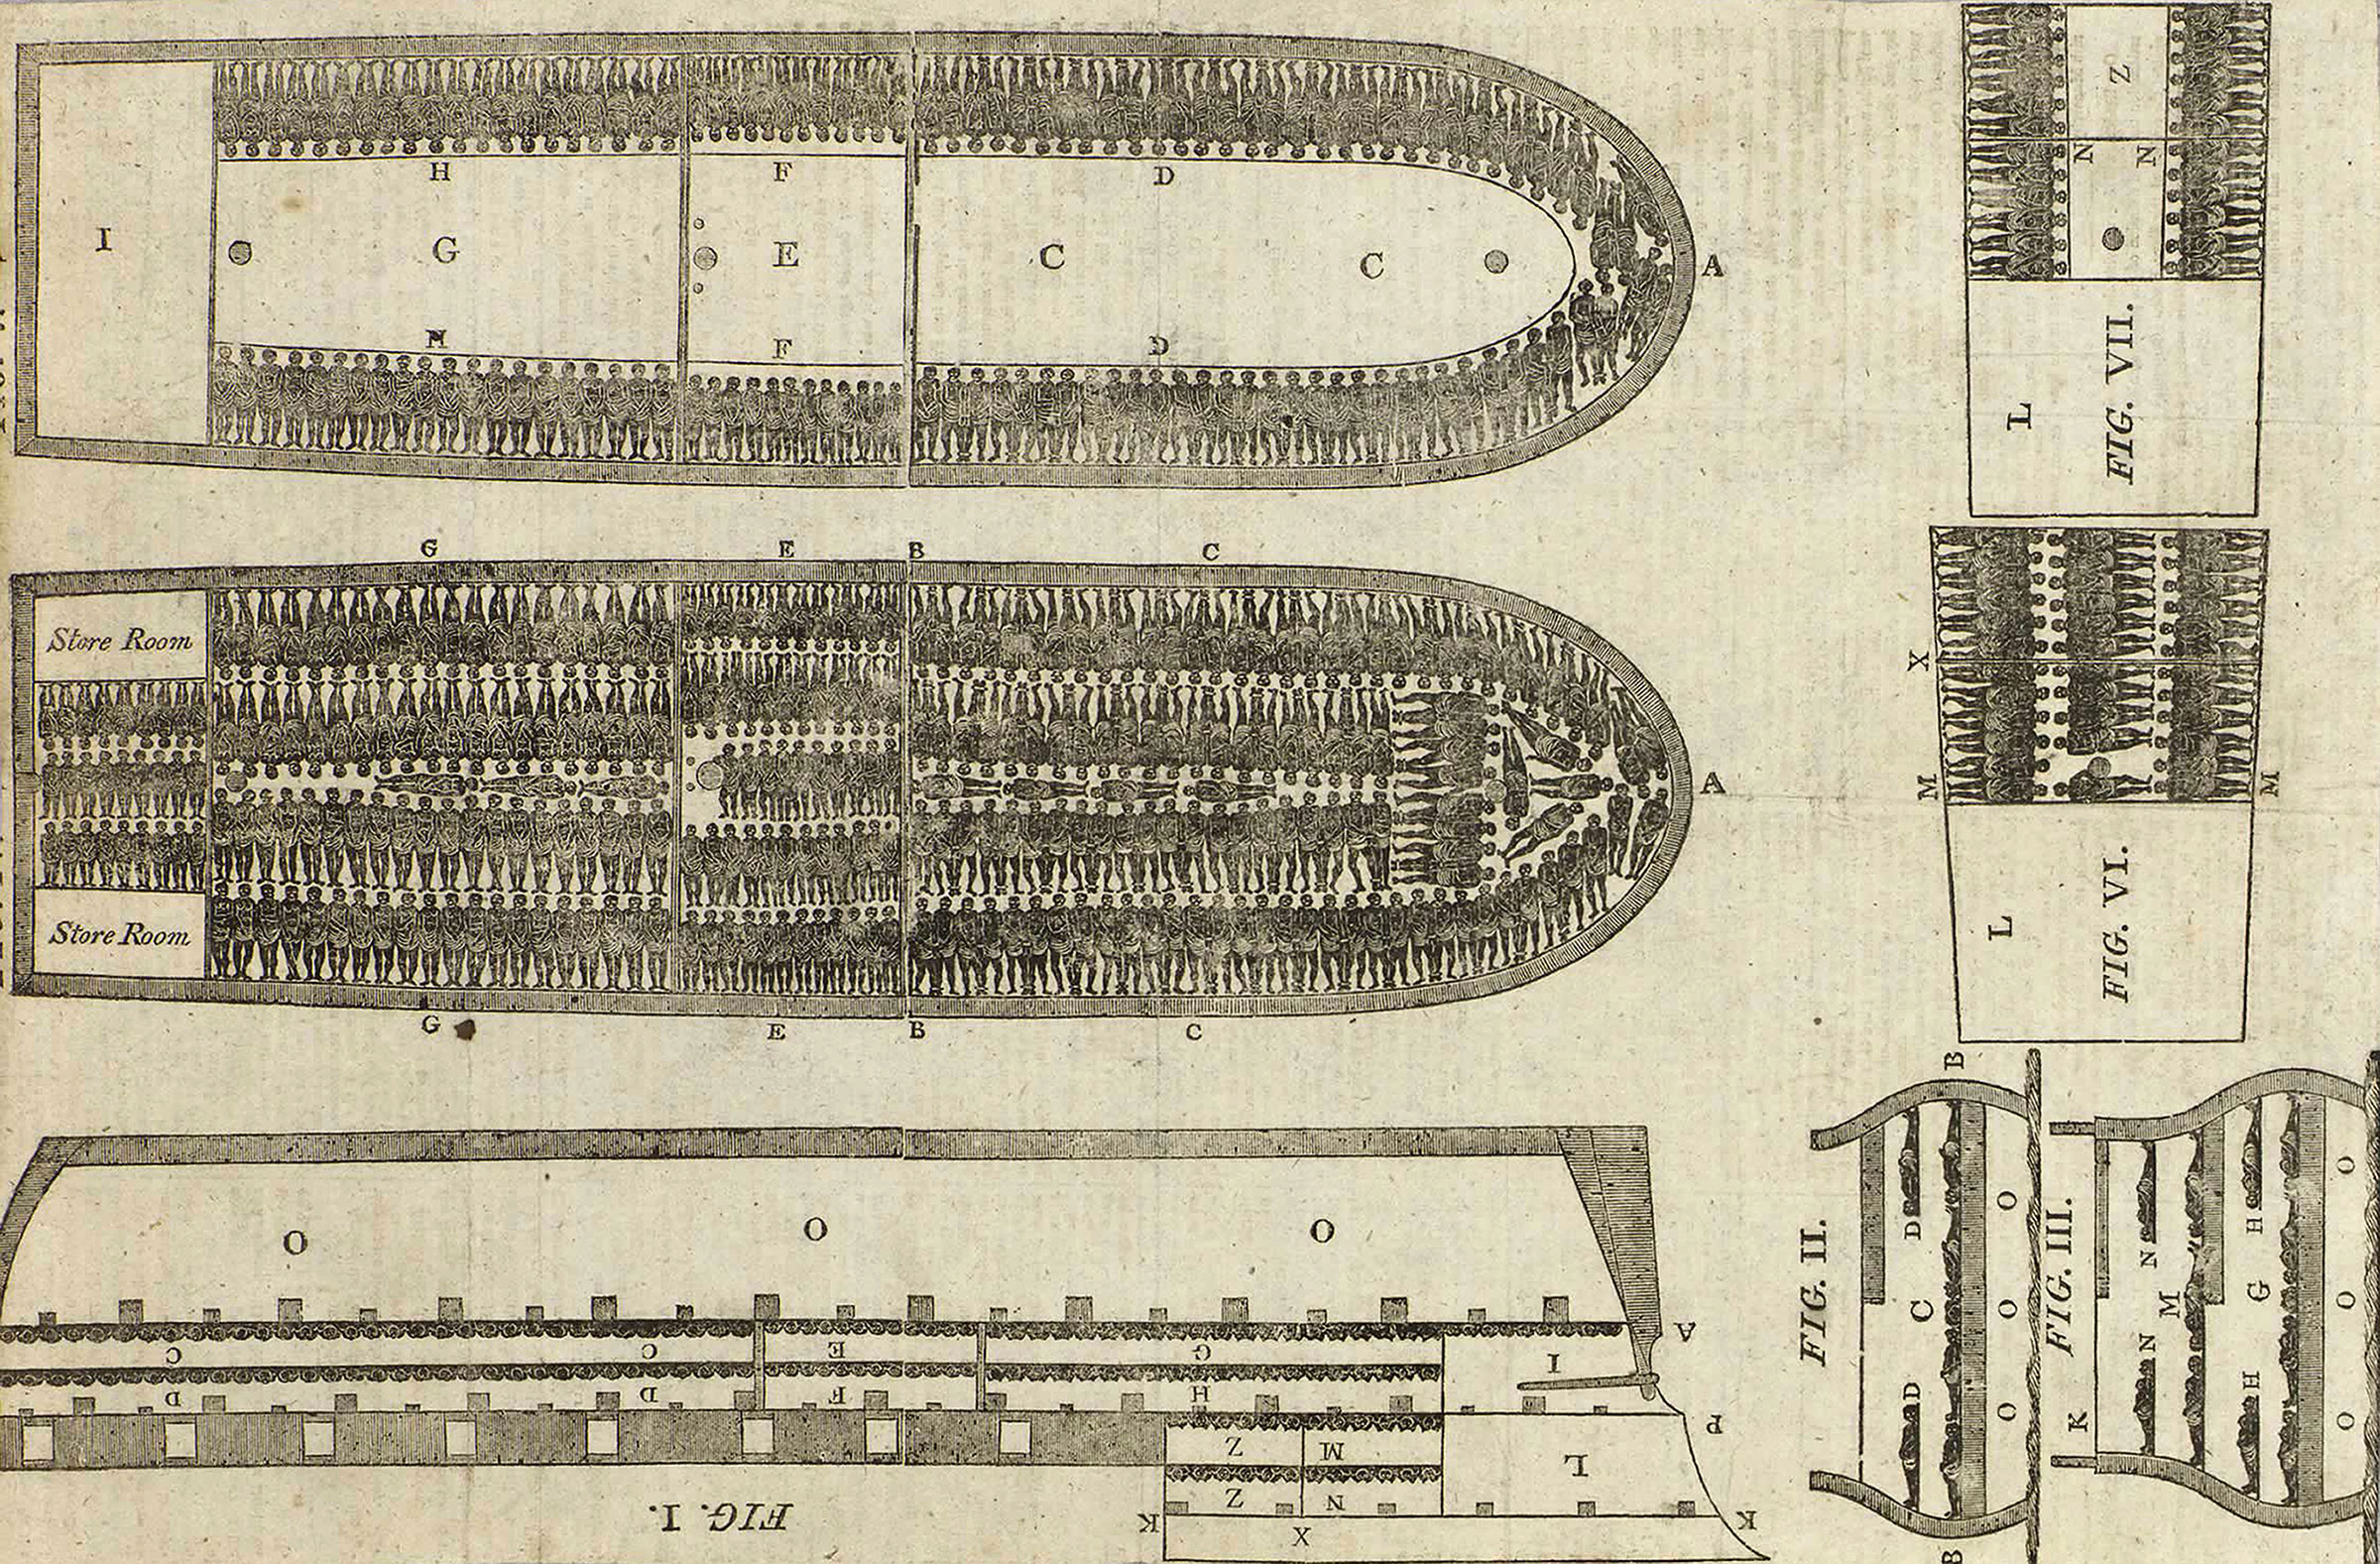 Engraving of the stowage plans of the slave ship Brooks, 1814.